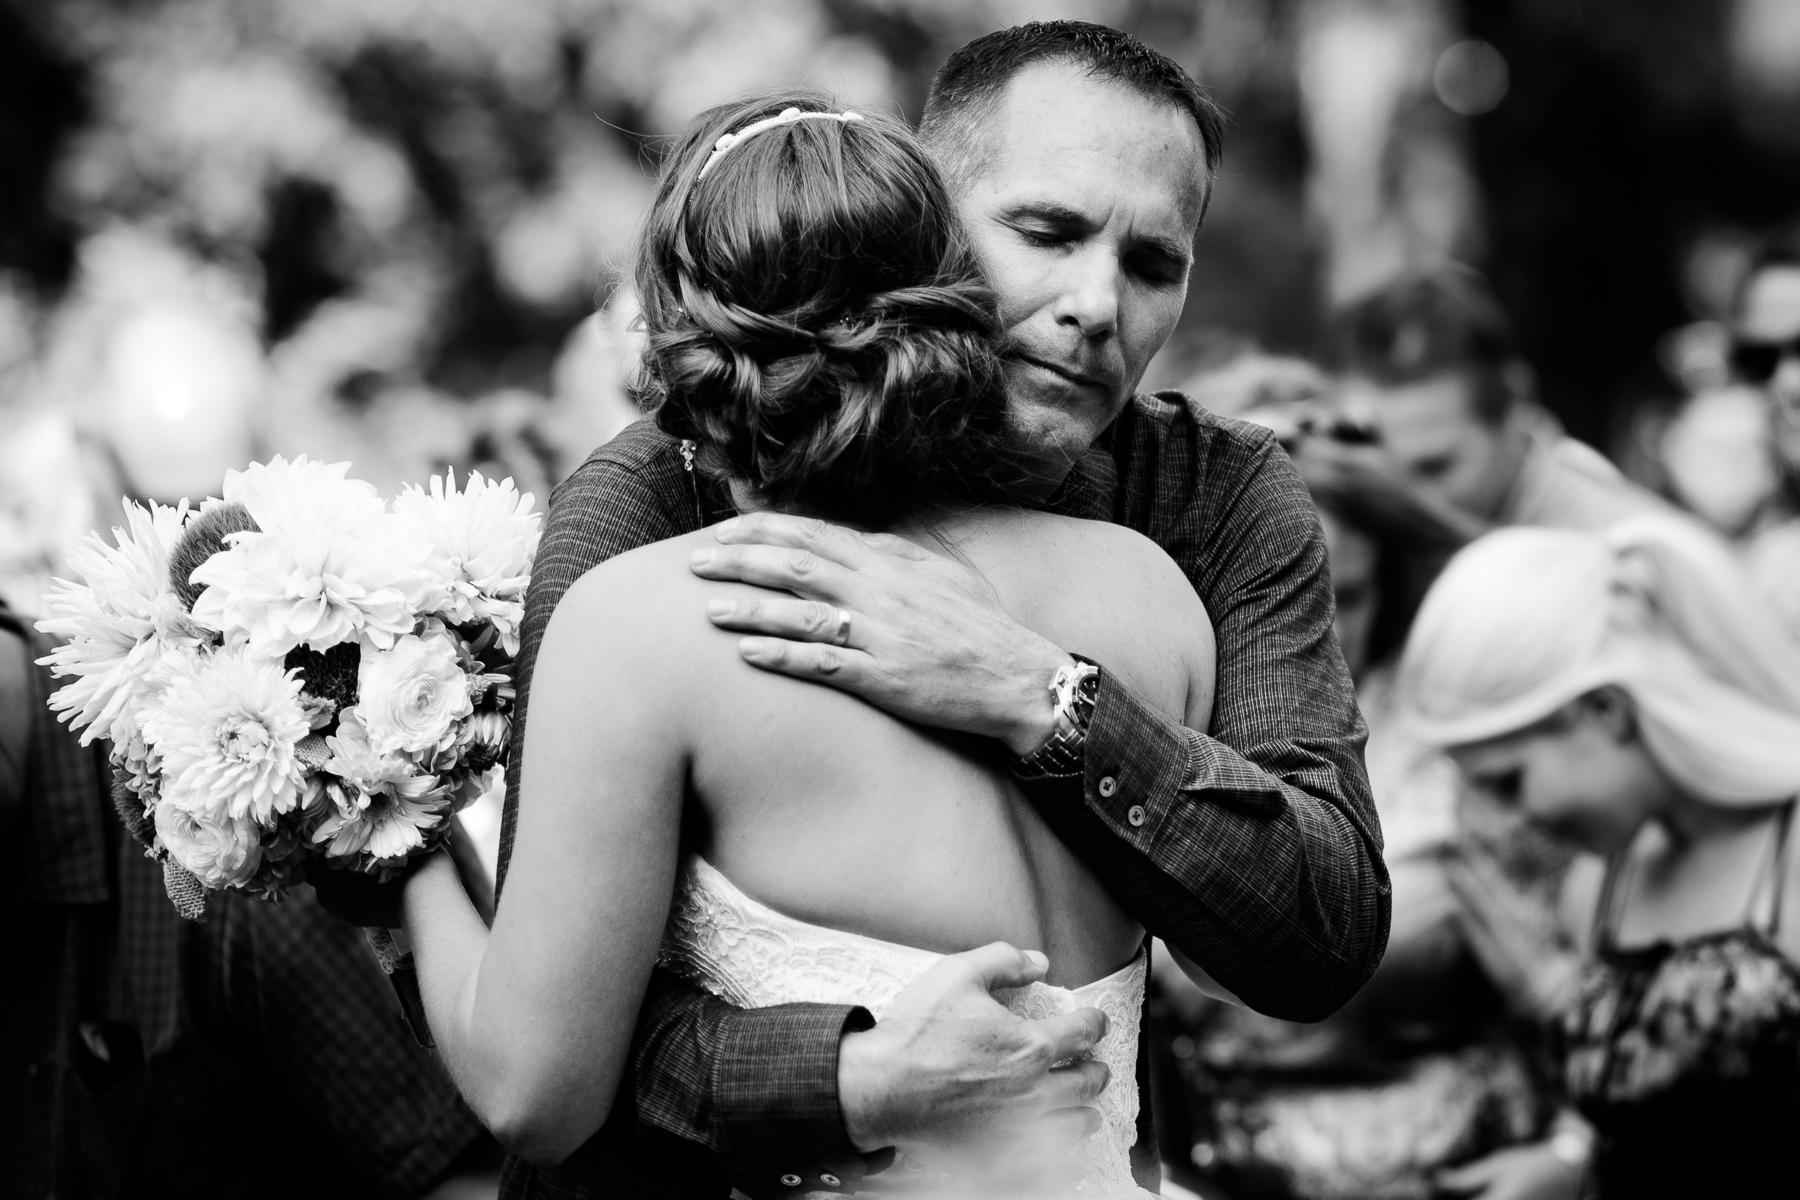 seattle-documentary-wedding-photographer-best-75